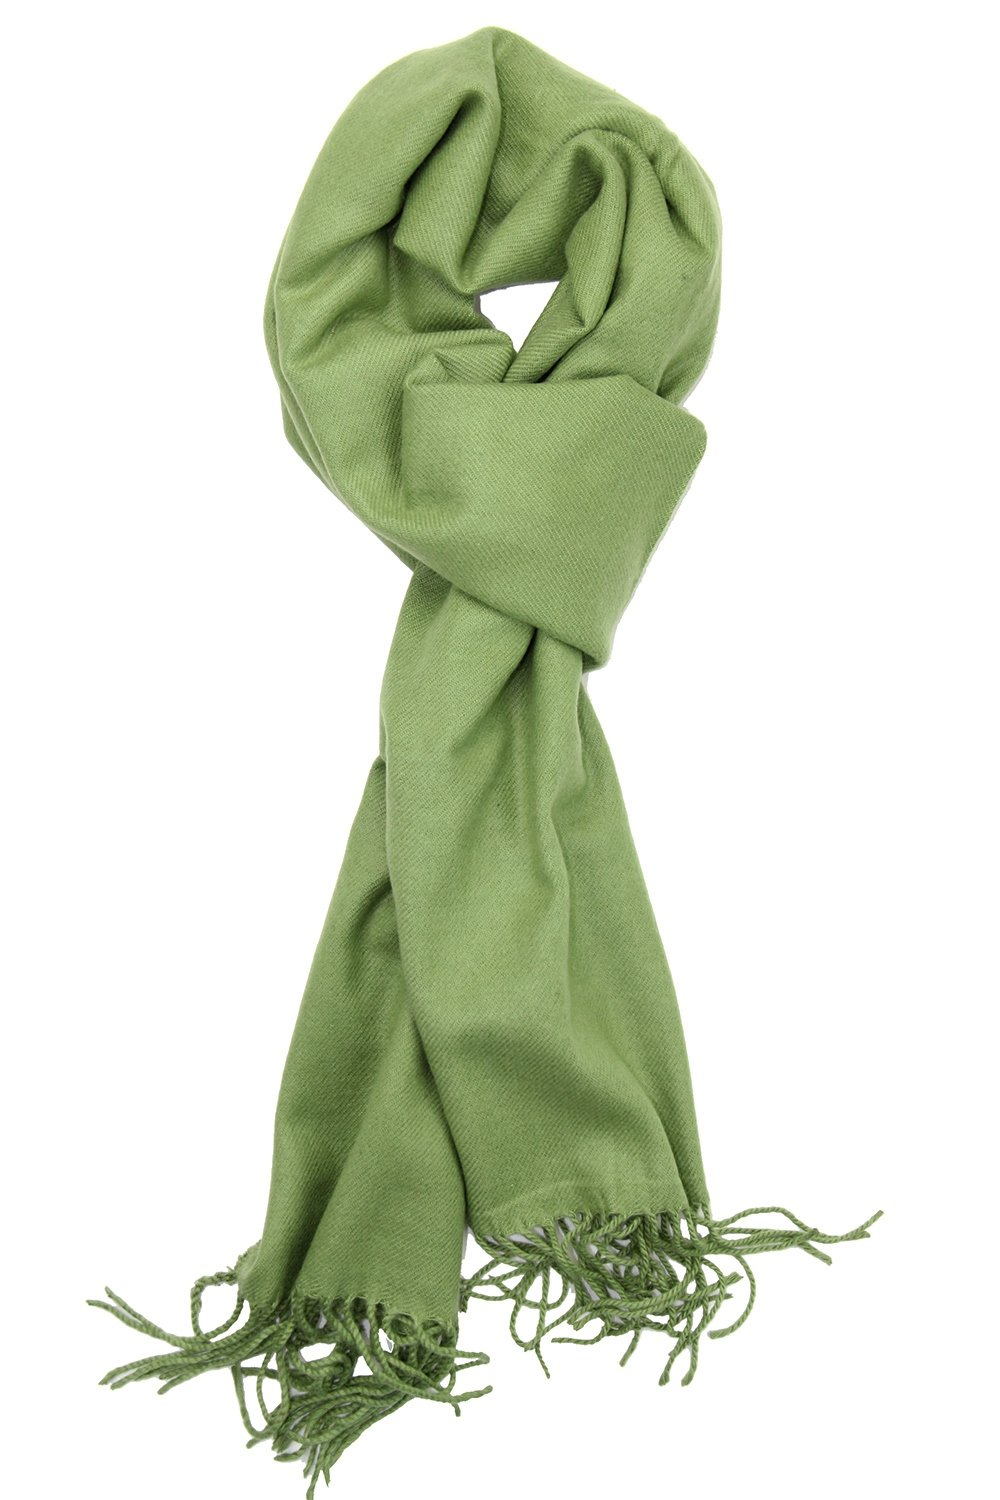 Achillea Soft & Warm Solid Color Cashmere Feel Winter Scarf Unisex (Moss Green)